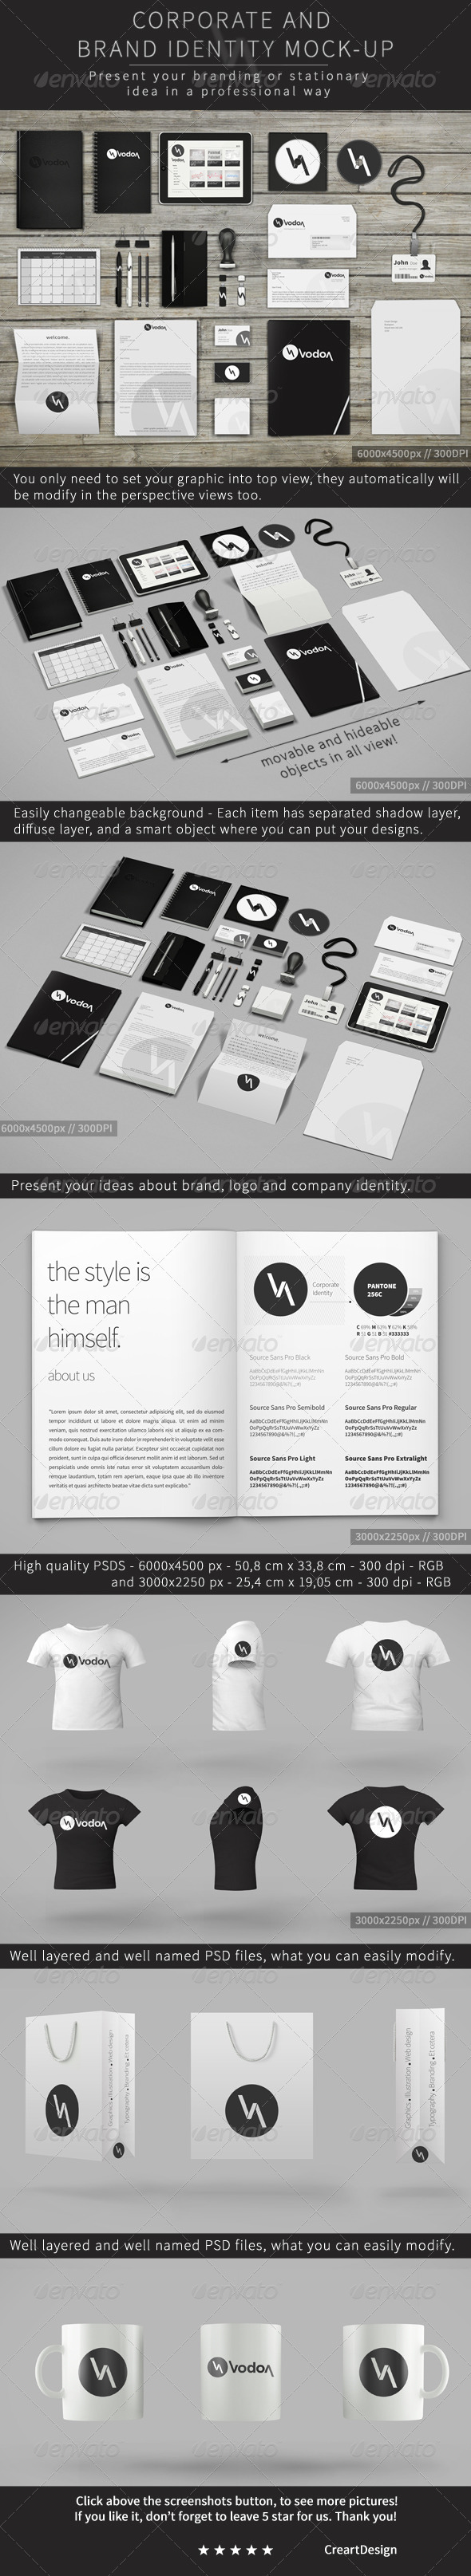 Corporate and Brand Identity Mock-Up - Stationery Print